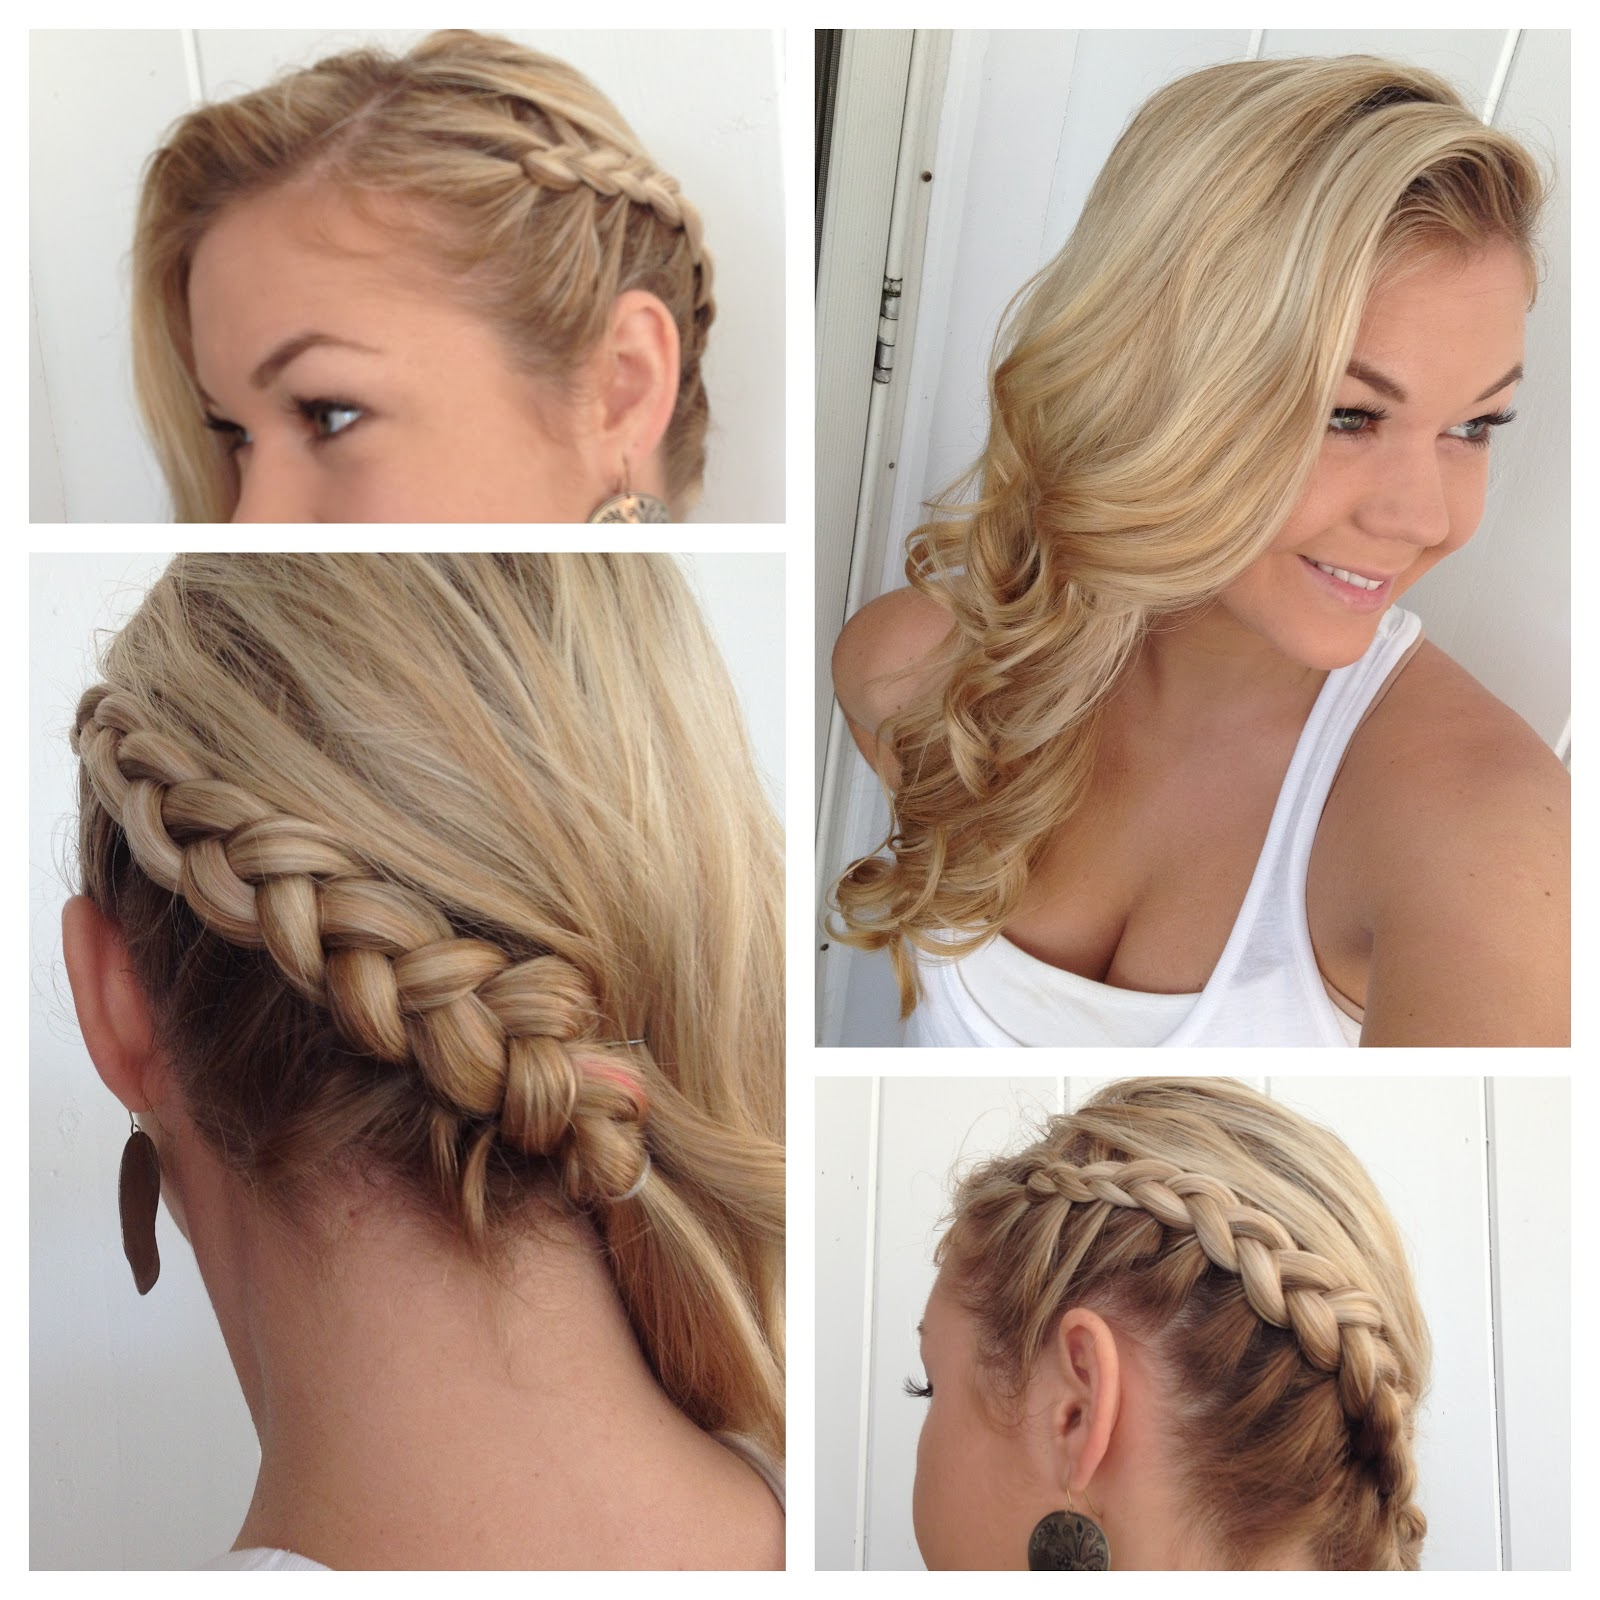 Alexsis Mae : Side braid with Classic Curls